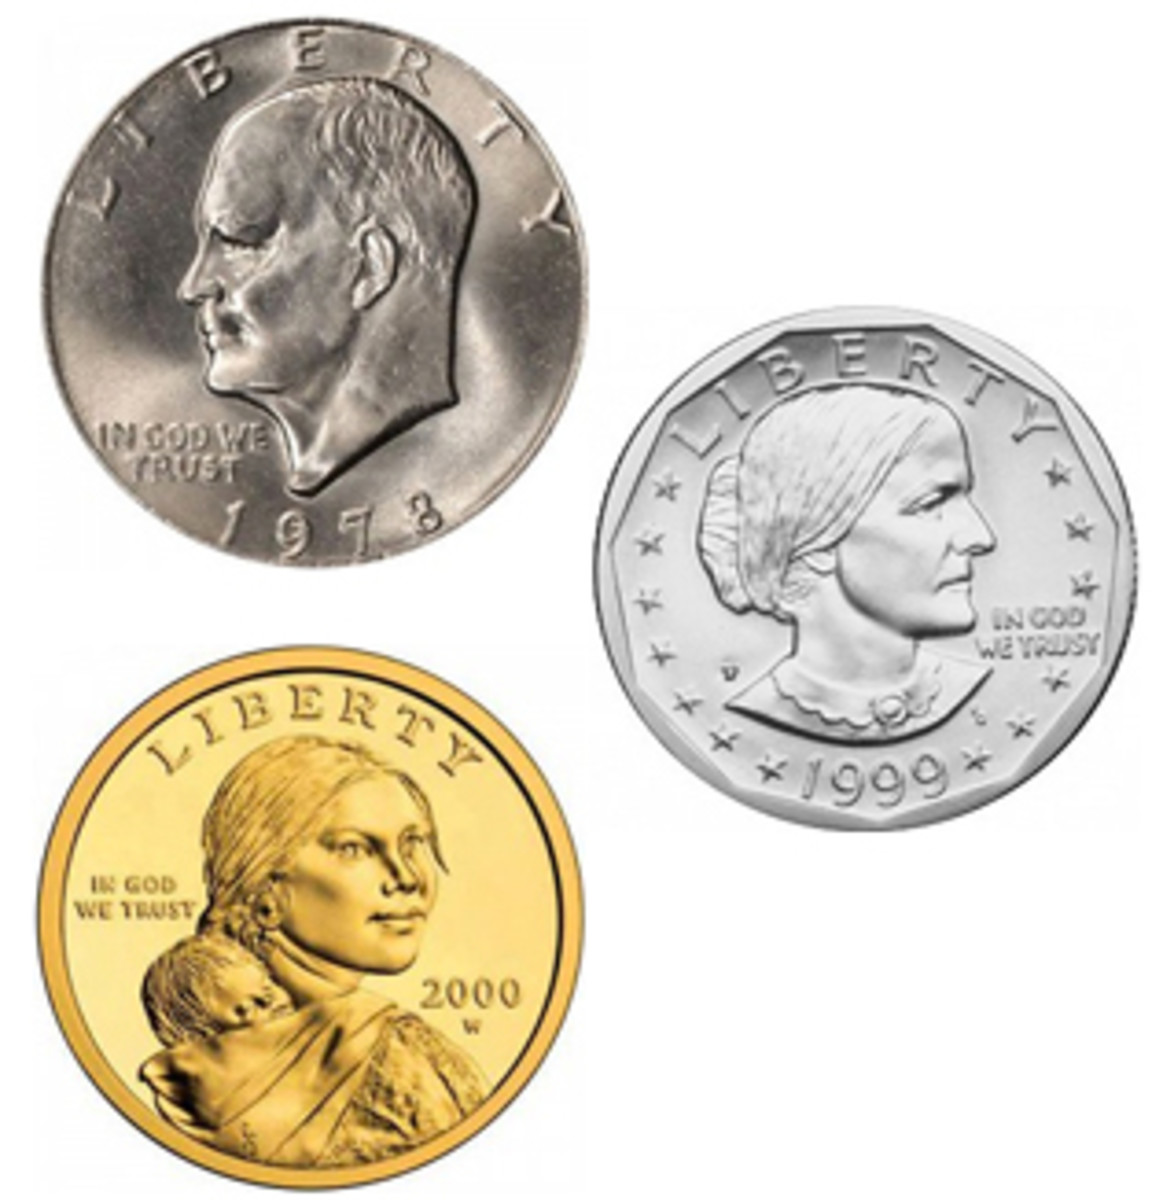 Base metal dollar coin designs that have circulated alongside the paper dollar include Eisenhower (top left), Susan B. Anthony (center right), and Sacagawea (bottom left). (Images courtesy www.usacoinbook.com)